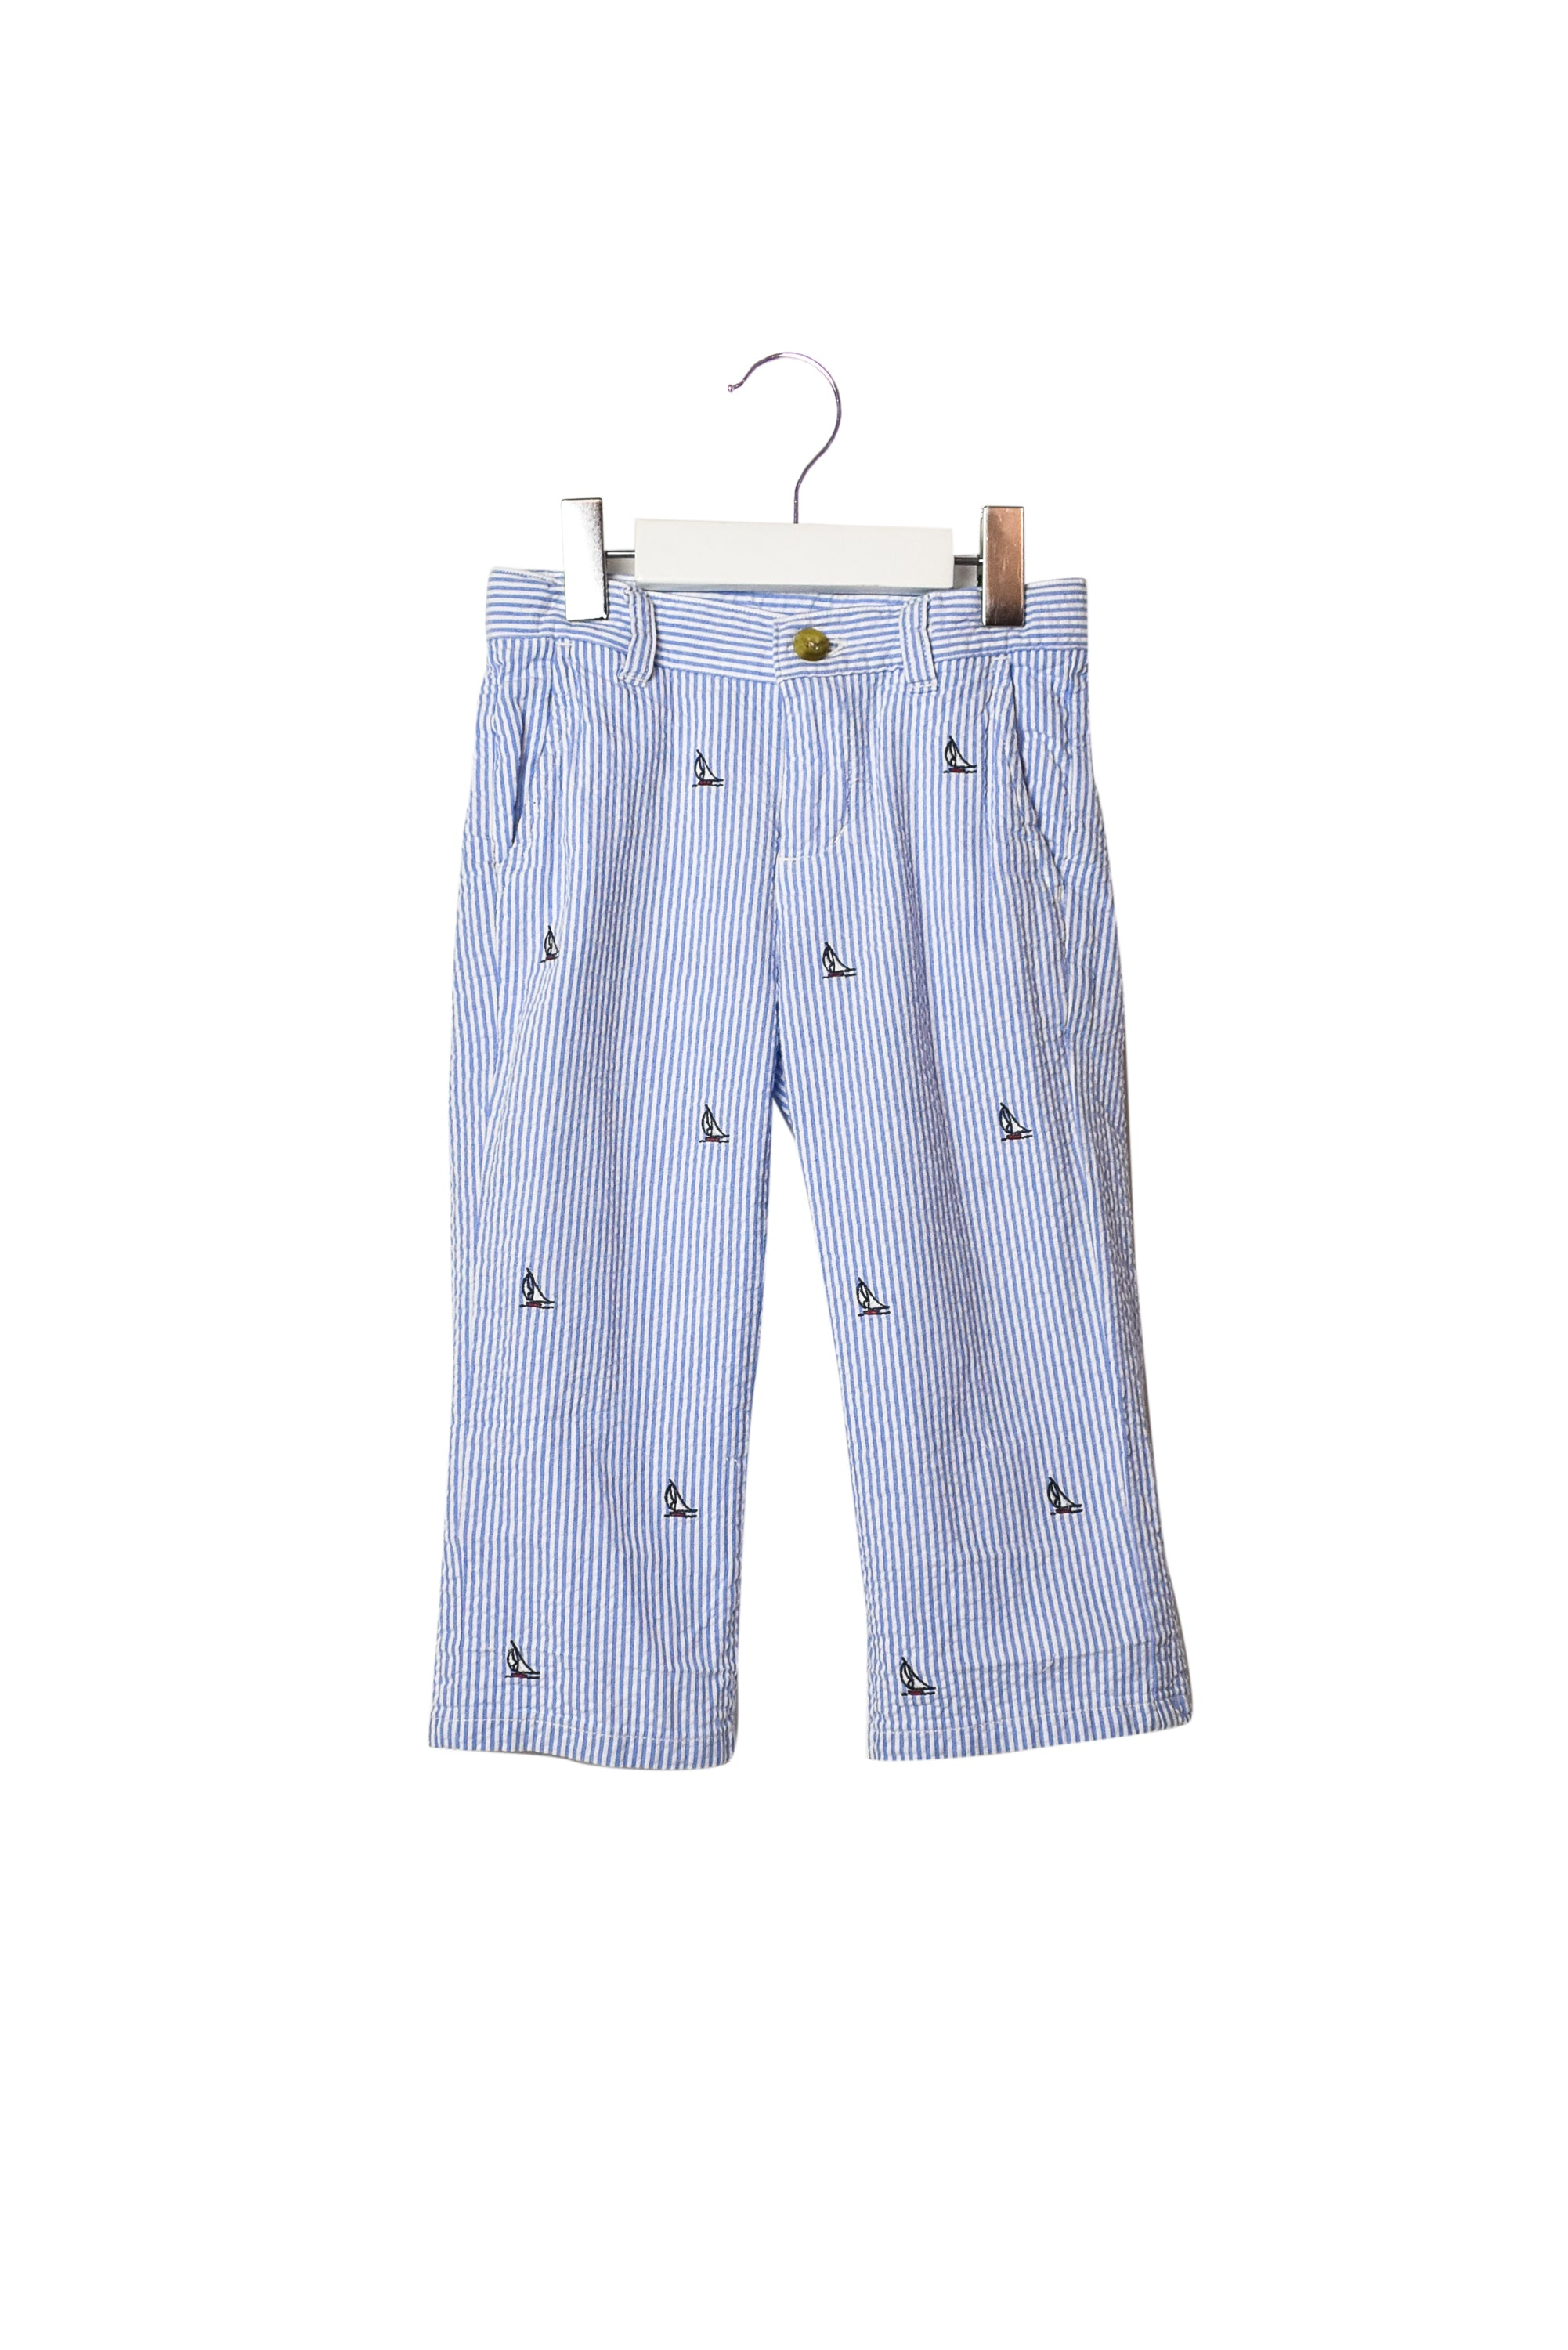 10007659 Janie & Jack Baby ~ Pants 18-24M at Retykle